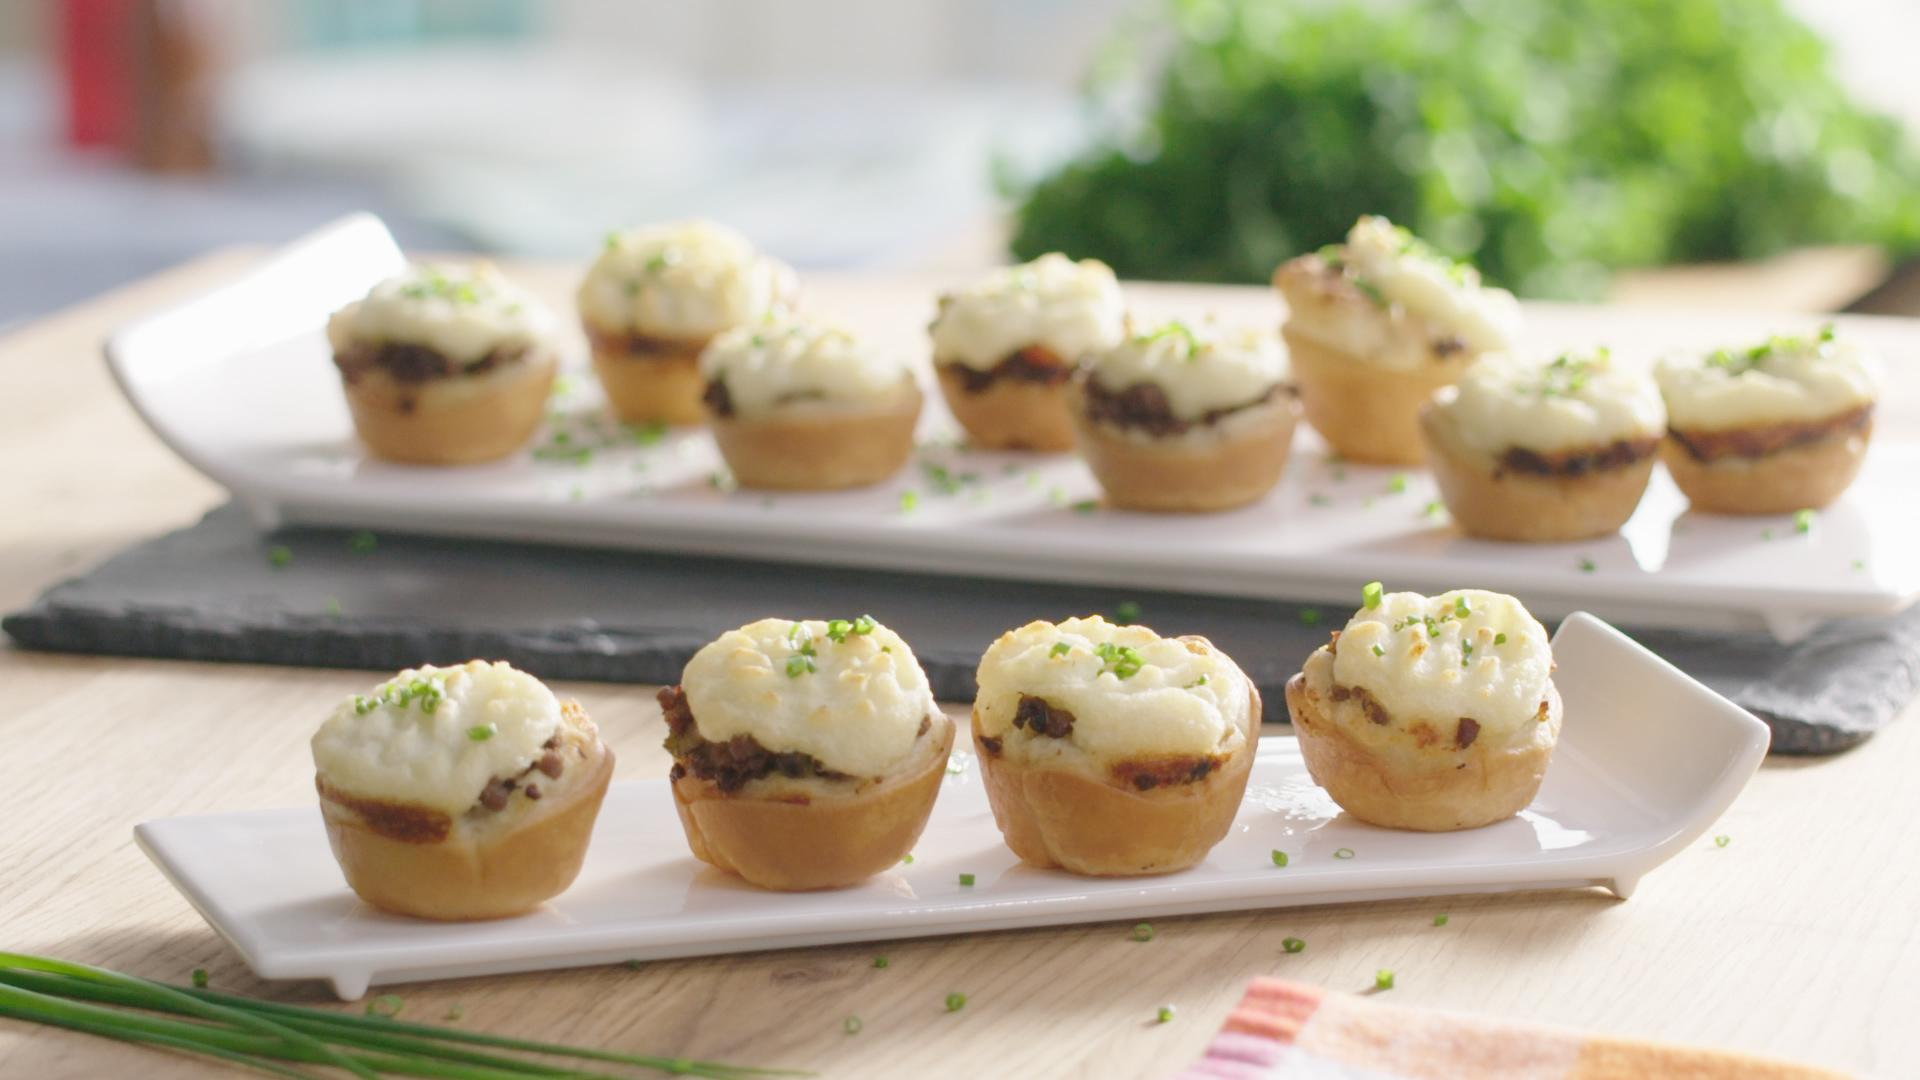 Cozy up on the couch this winter with these mini shepherd's pies